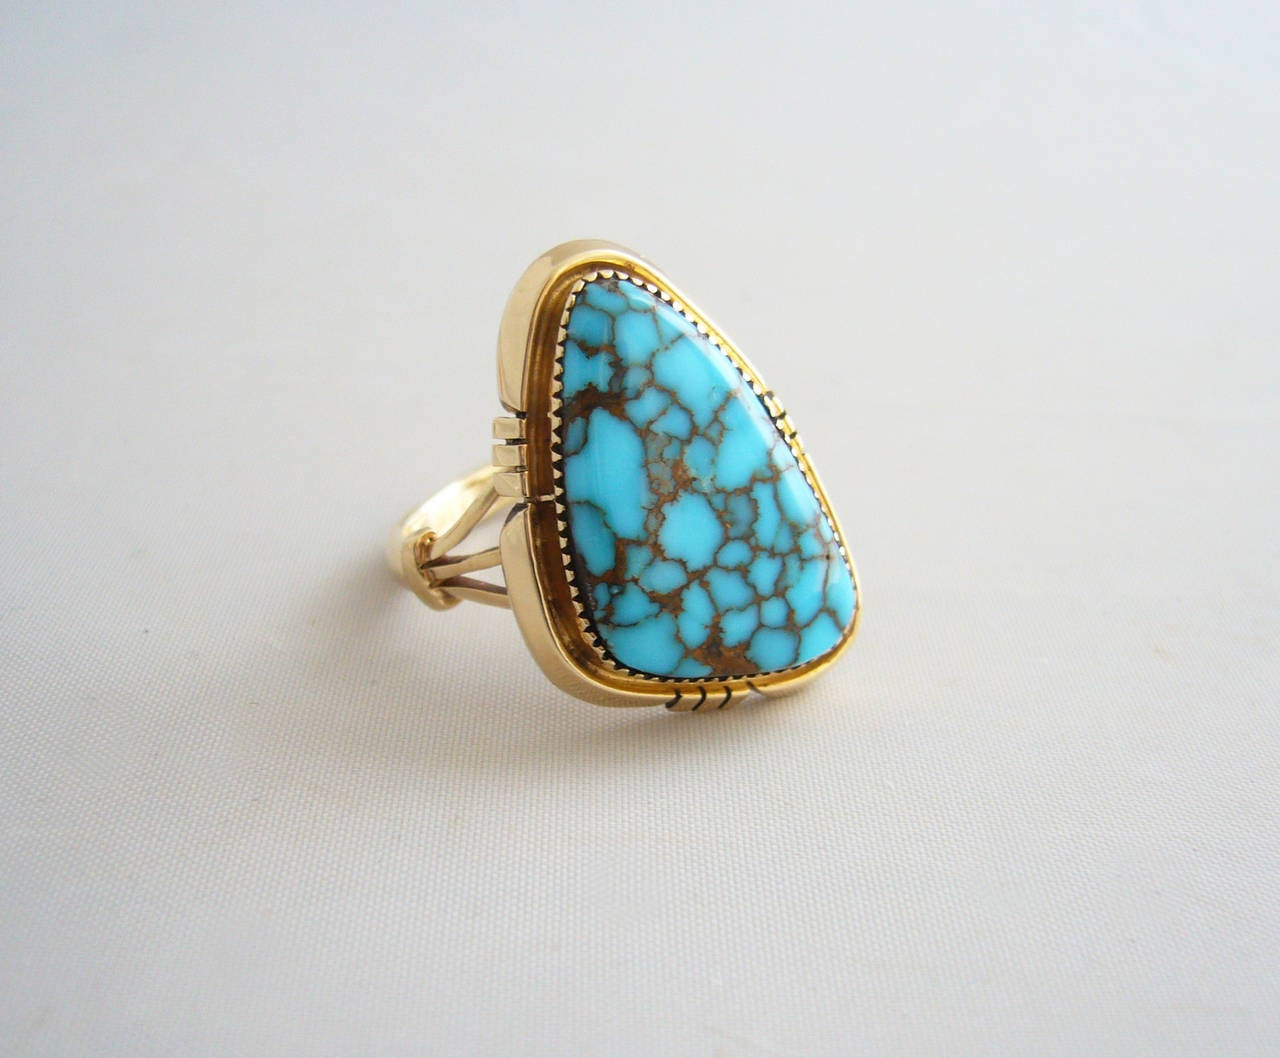 An exceptional 14K gold ring with triangular Blue Mountain or Kingman turquoise stone set within.  Face of the ring measures 1 1/8